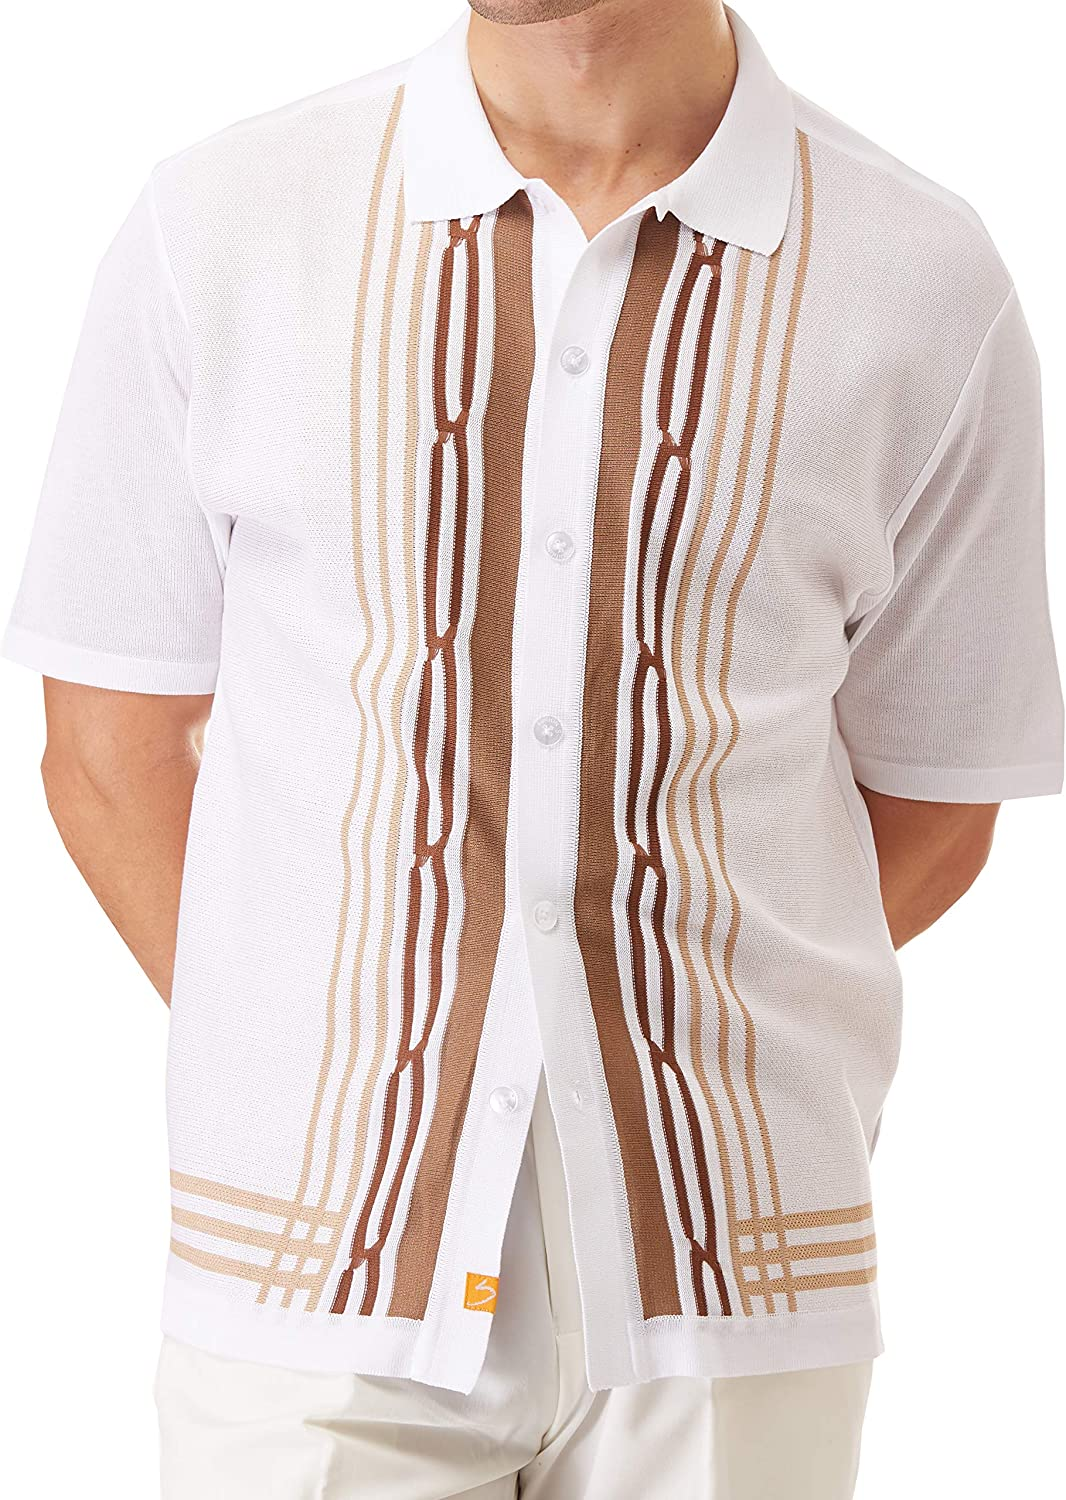 Mens Vintage Shirts – Casual, Dress, T-shirts, Polos SAFIRE SILK INC. Edition S Mens Short Sleeve Knit Shirt - California Rockabilly Style: Multi Stripes $49.00 AT vintagedancer.com